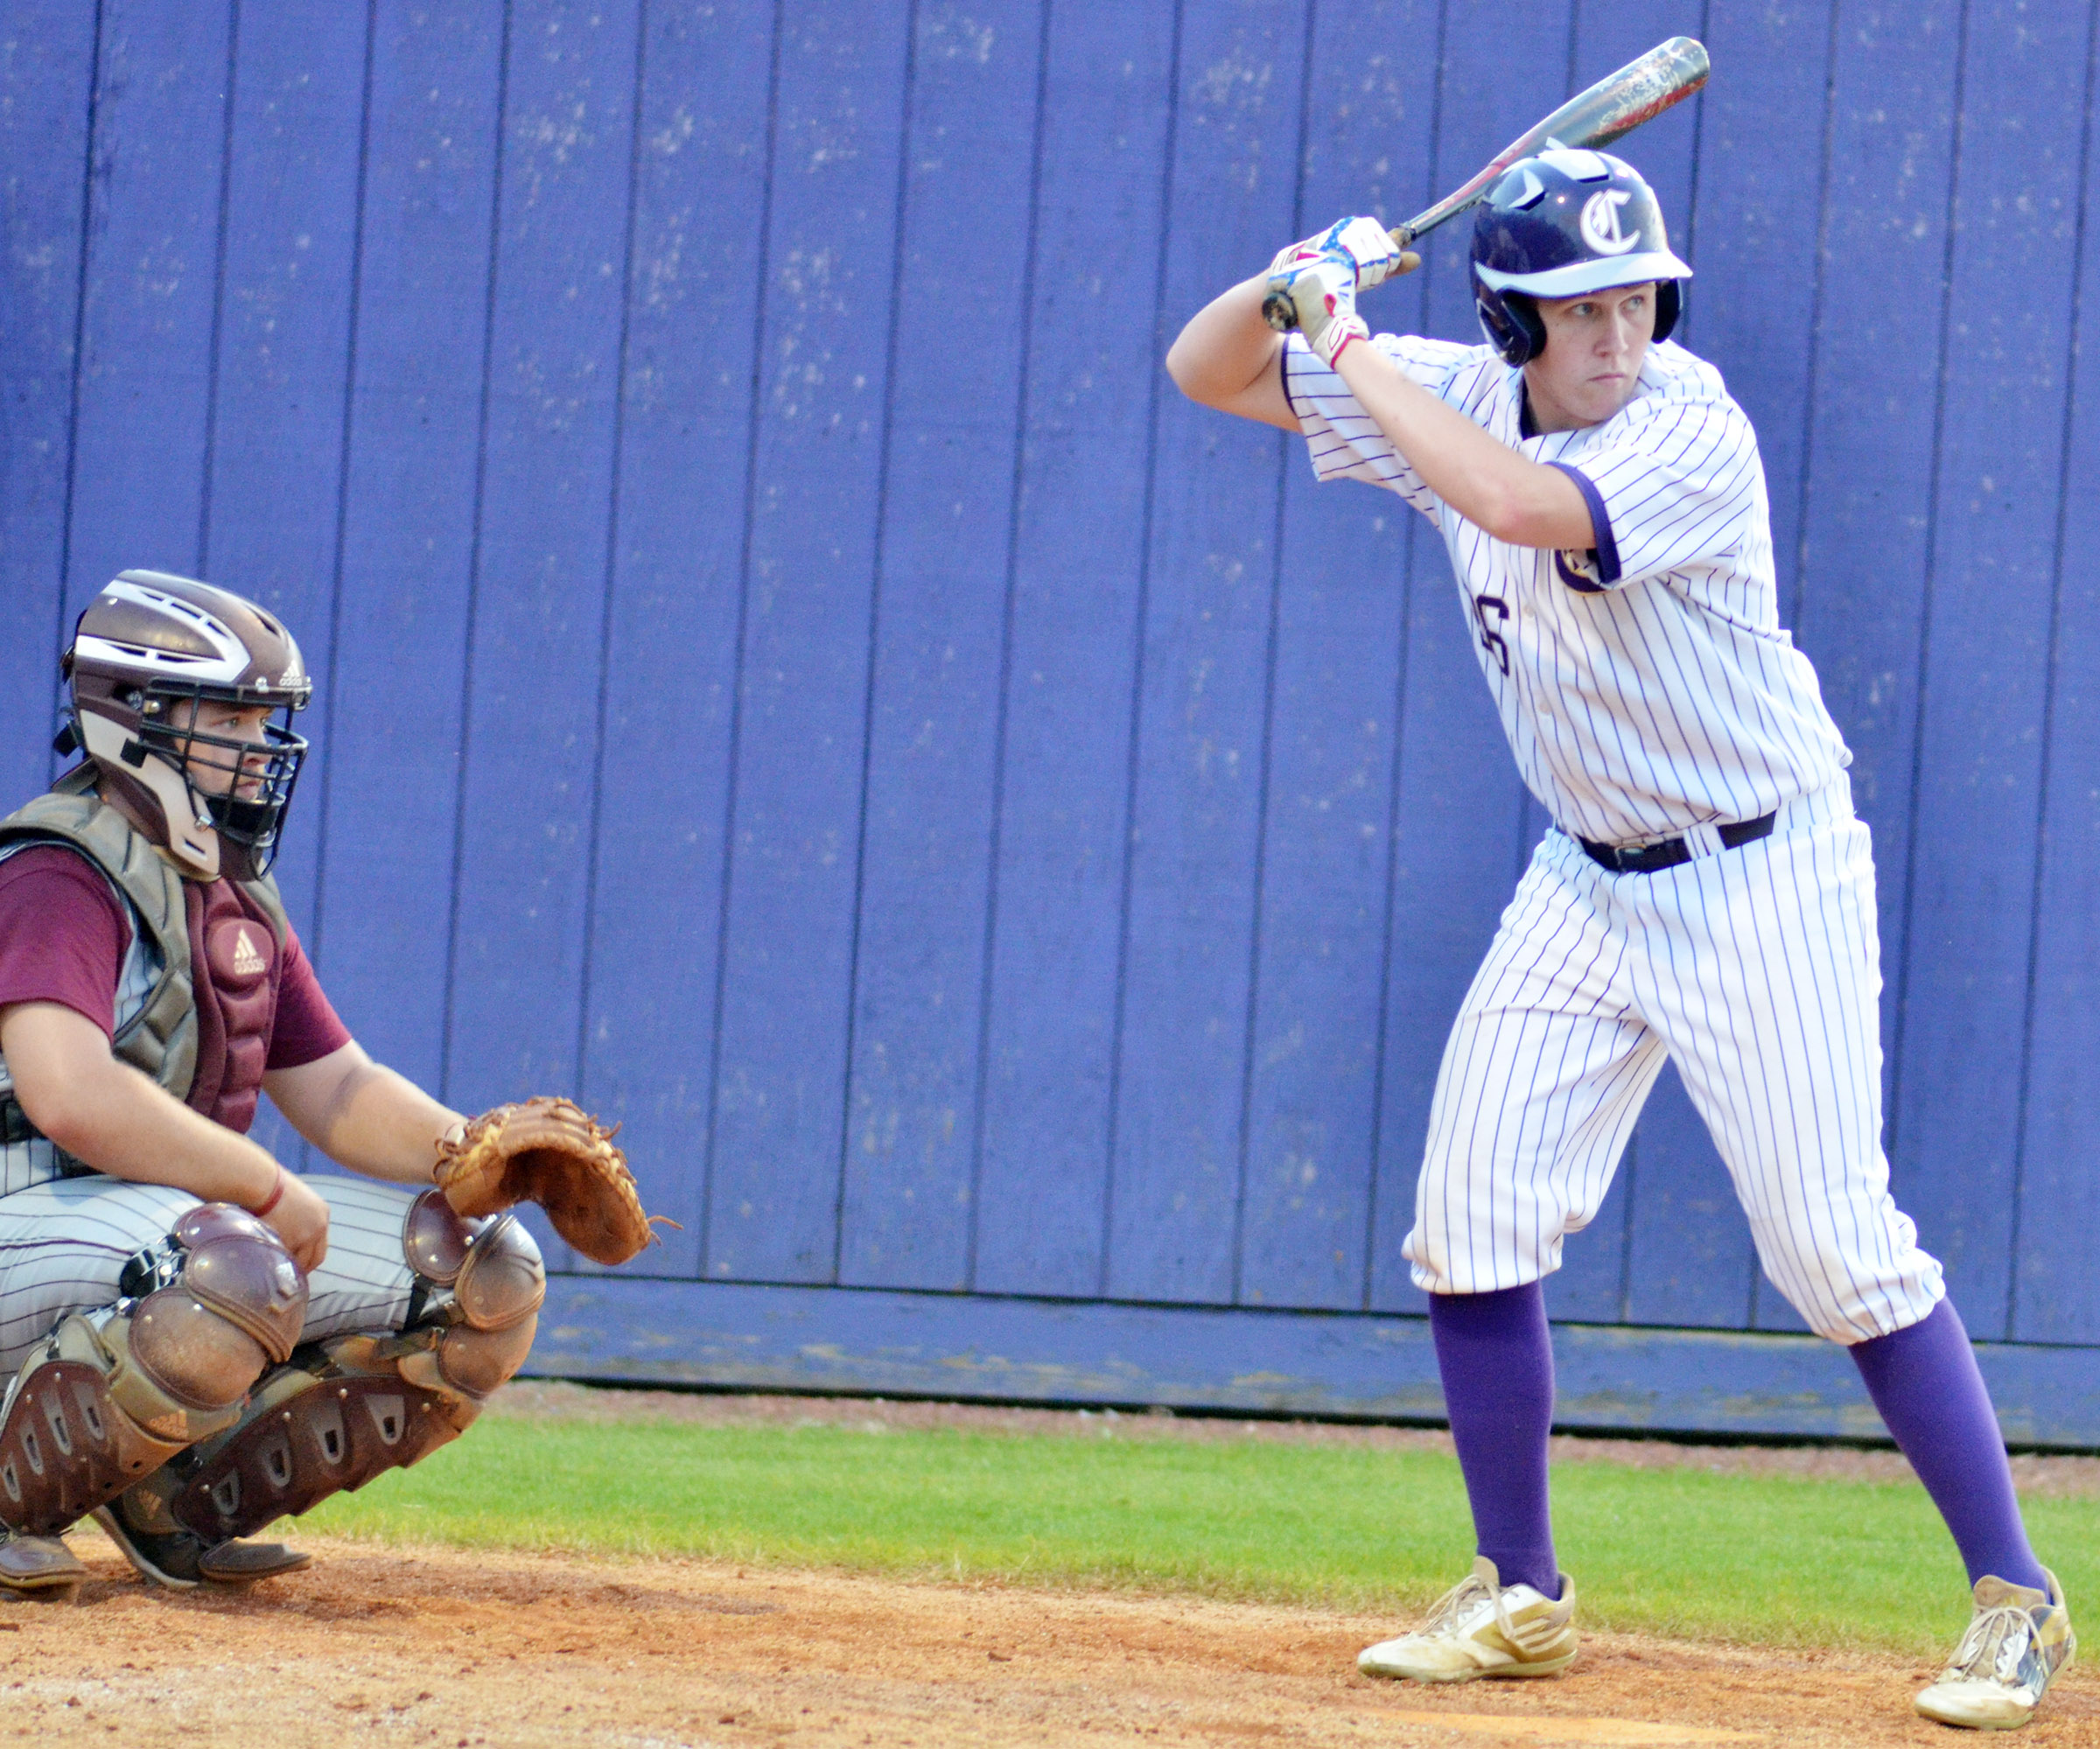 CHS senior Jared Brewster looks to go to third.